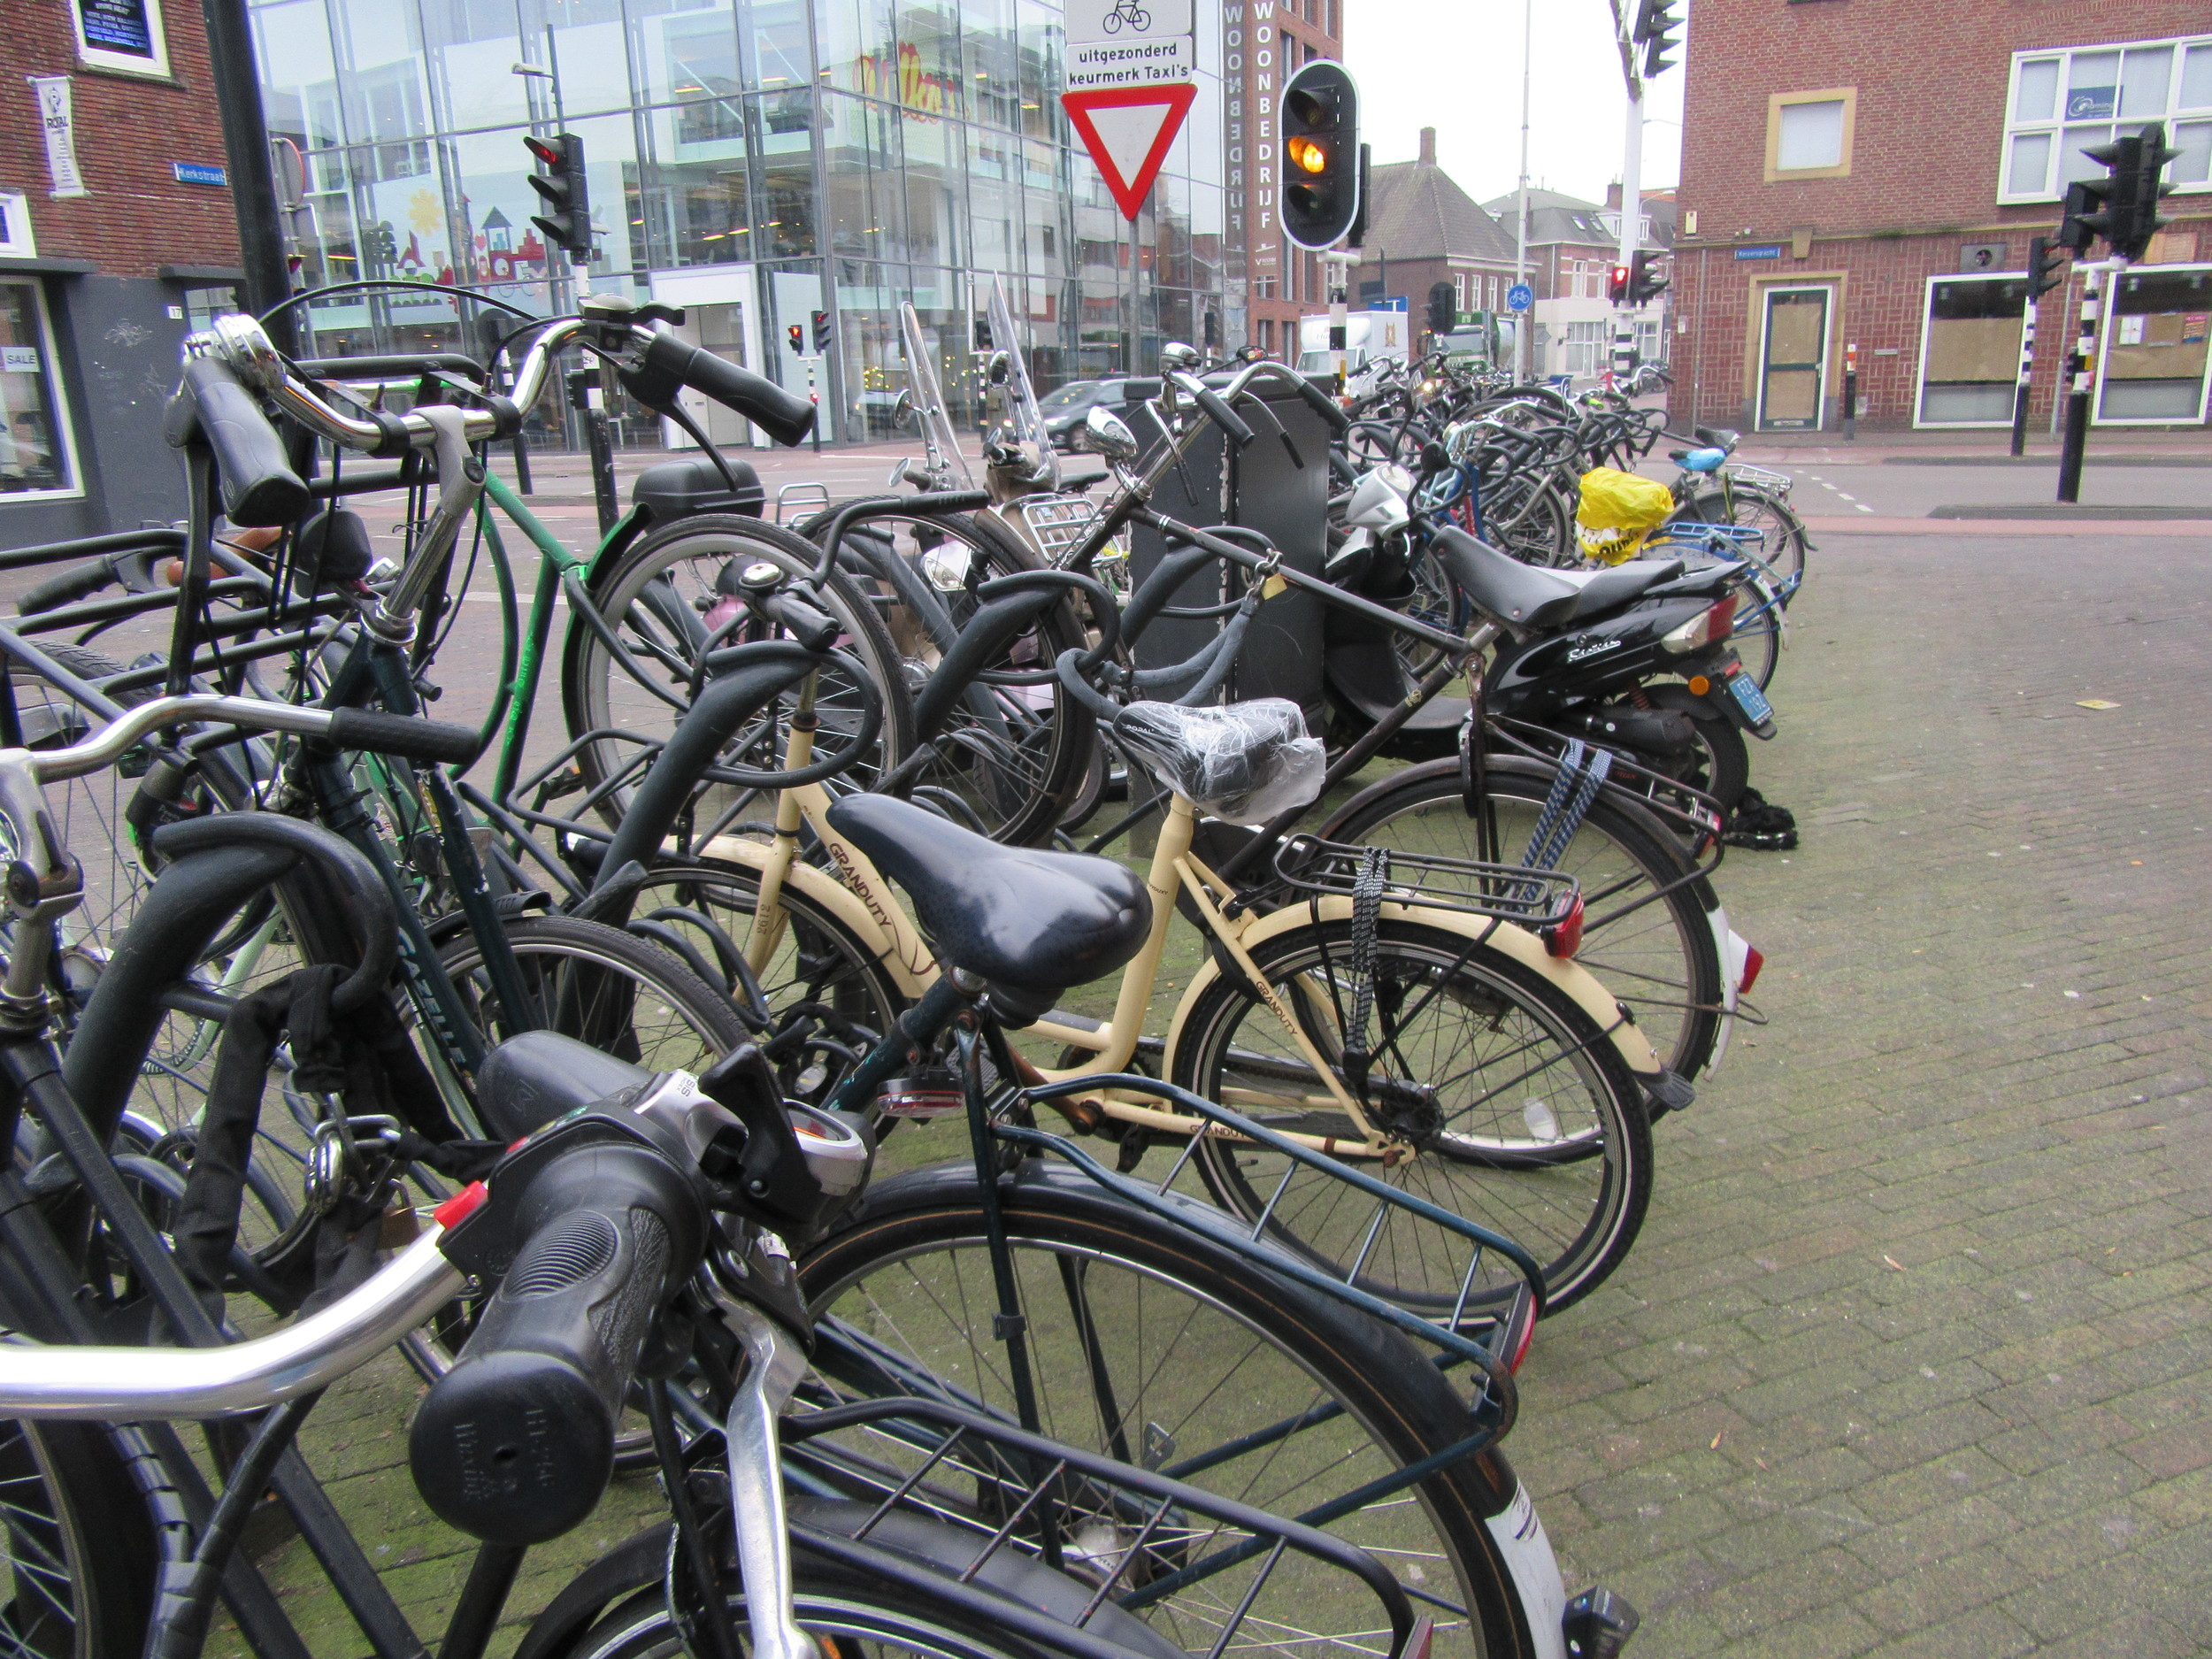 Bikes, bikes and more bikes. Great for locals, a nightmare for tourists.